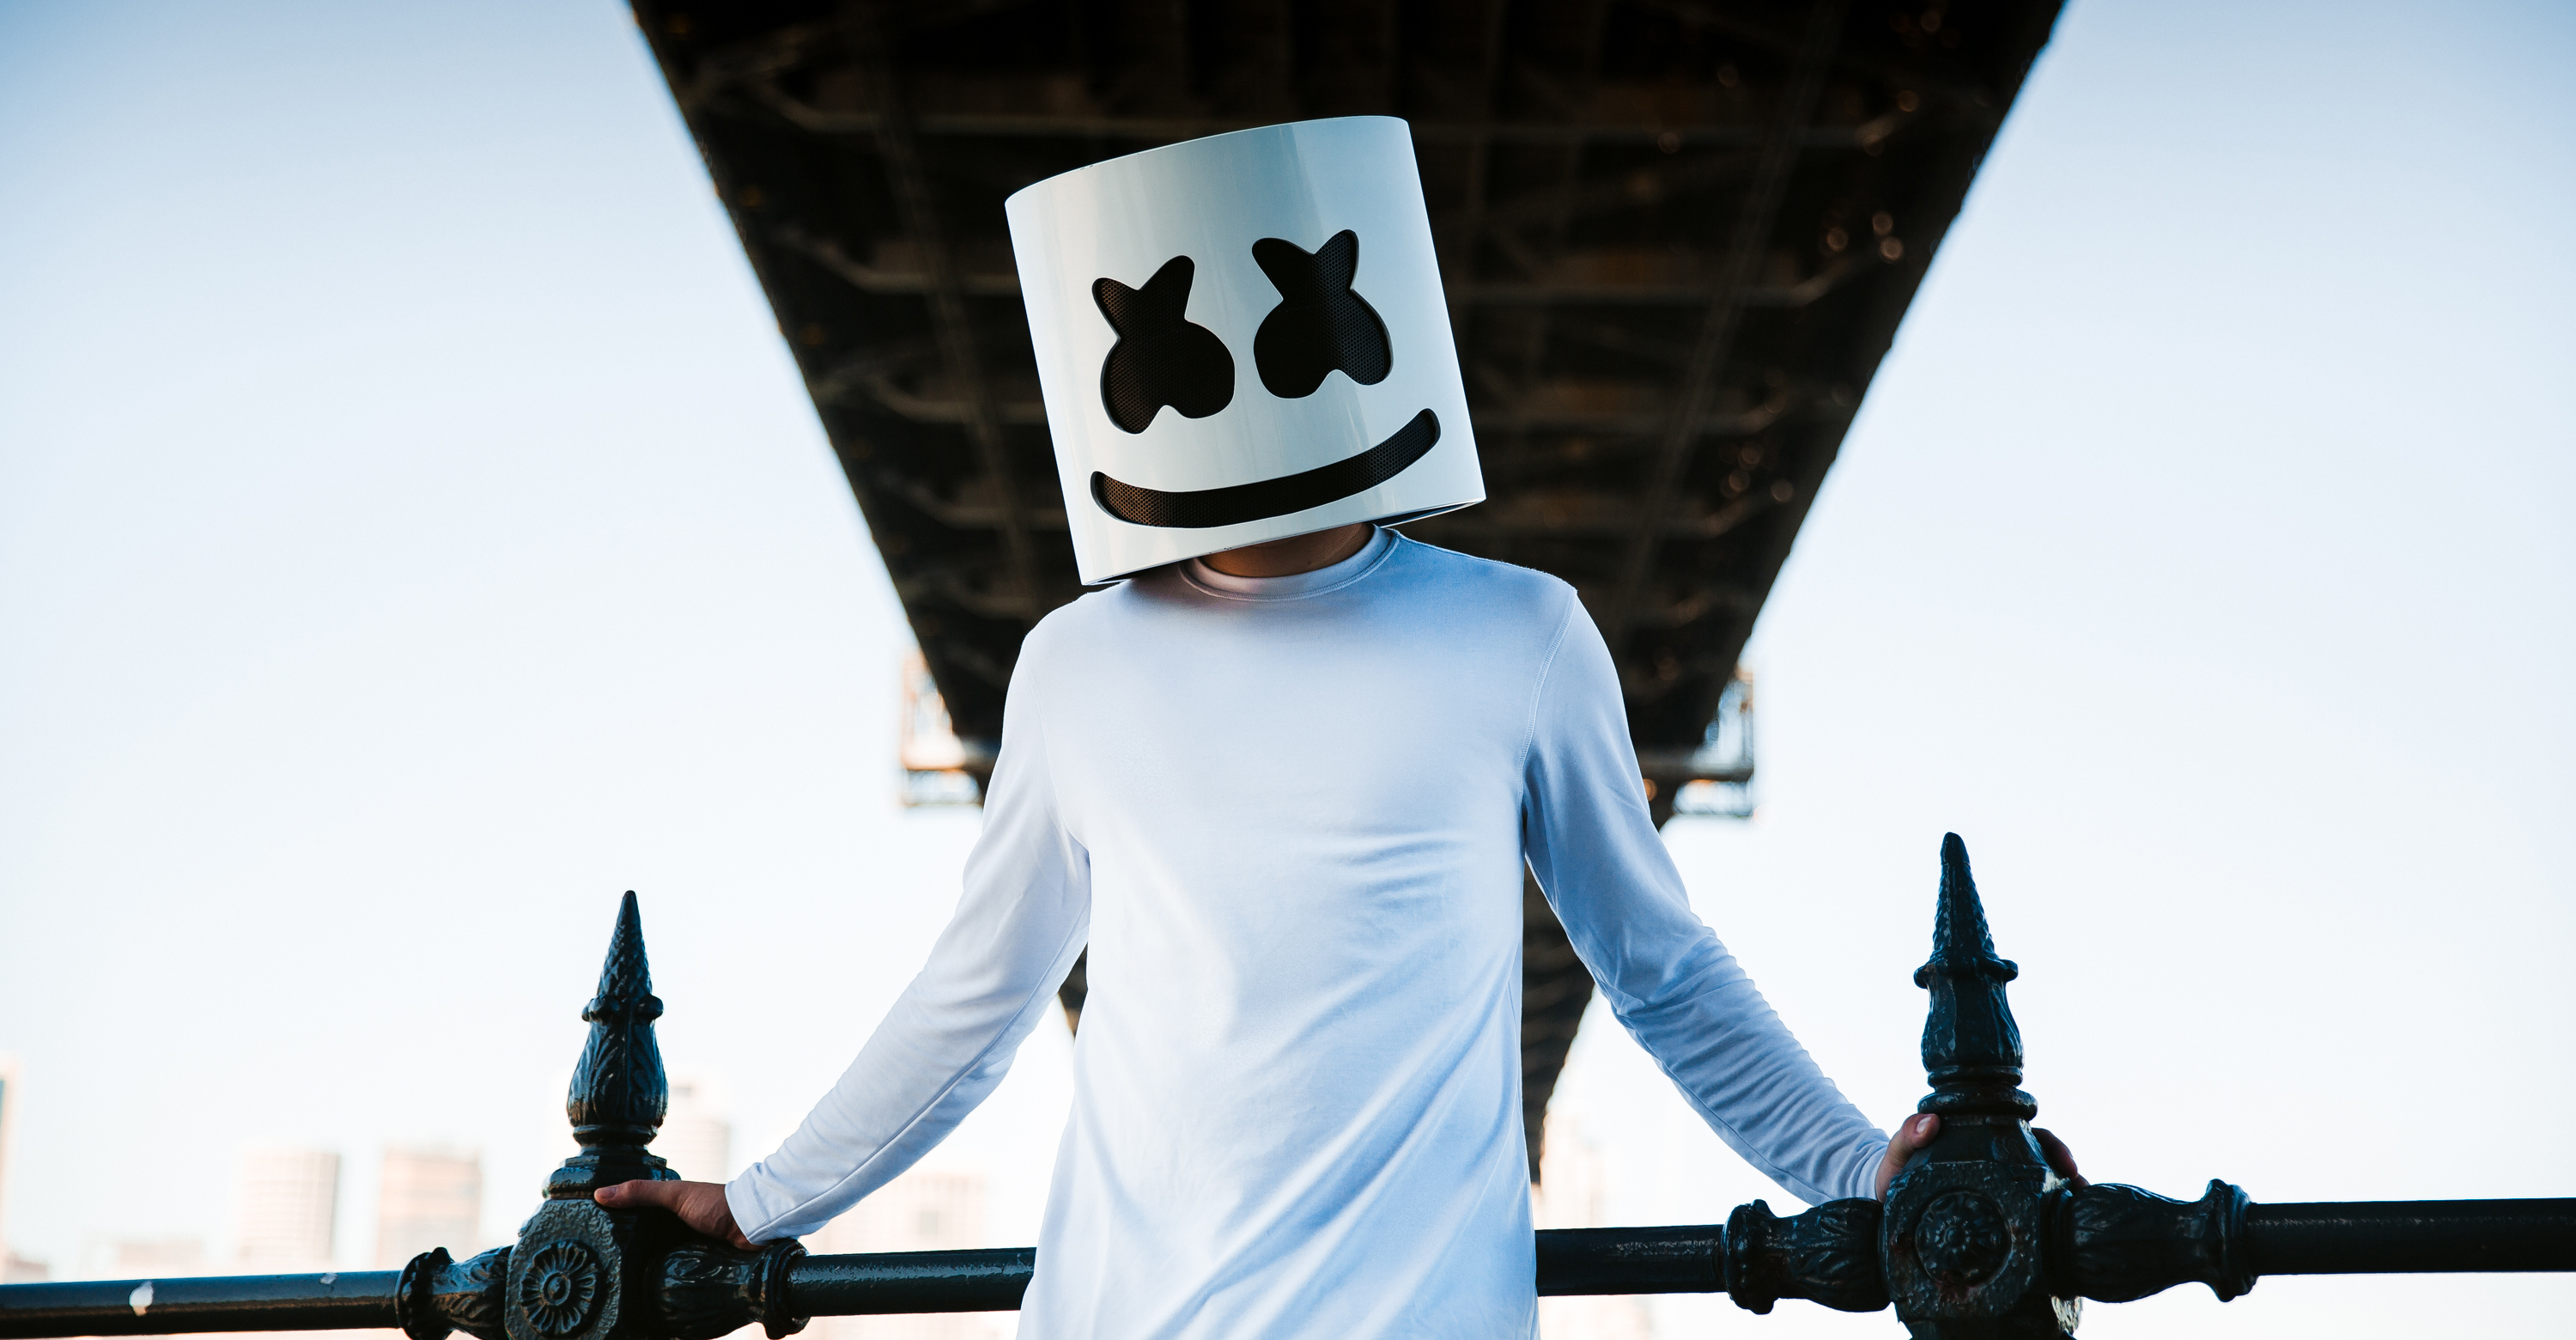 3000x1560 43 Marshmello HD Wallpapers | Background Images - Wallpaper ...